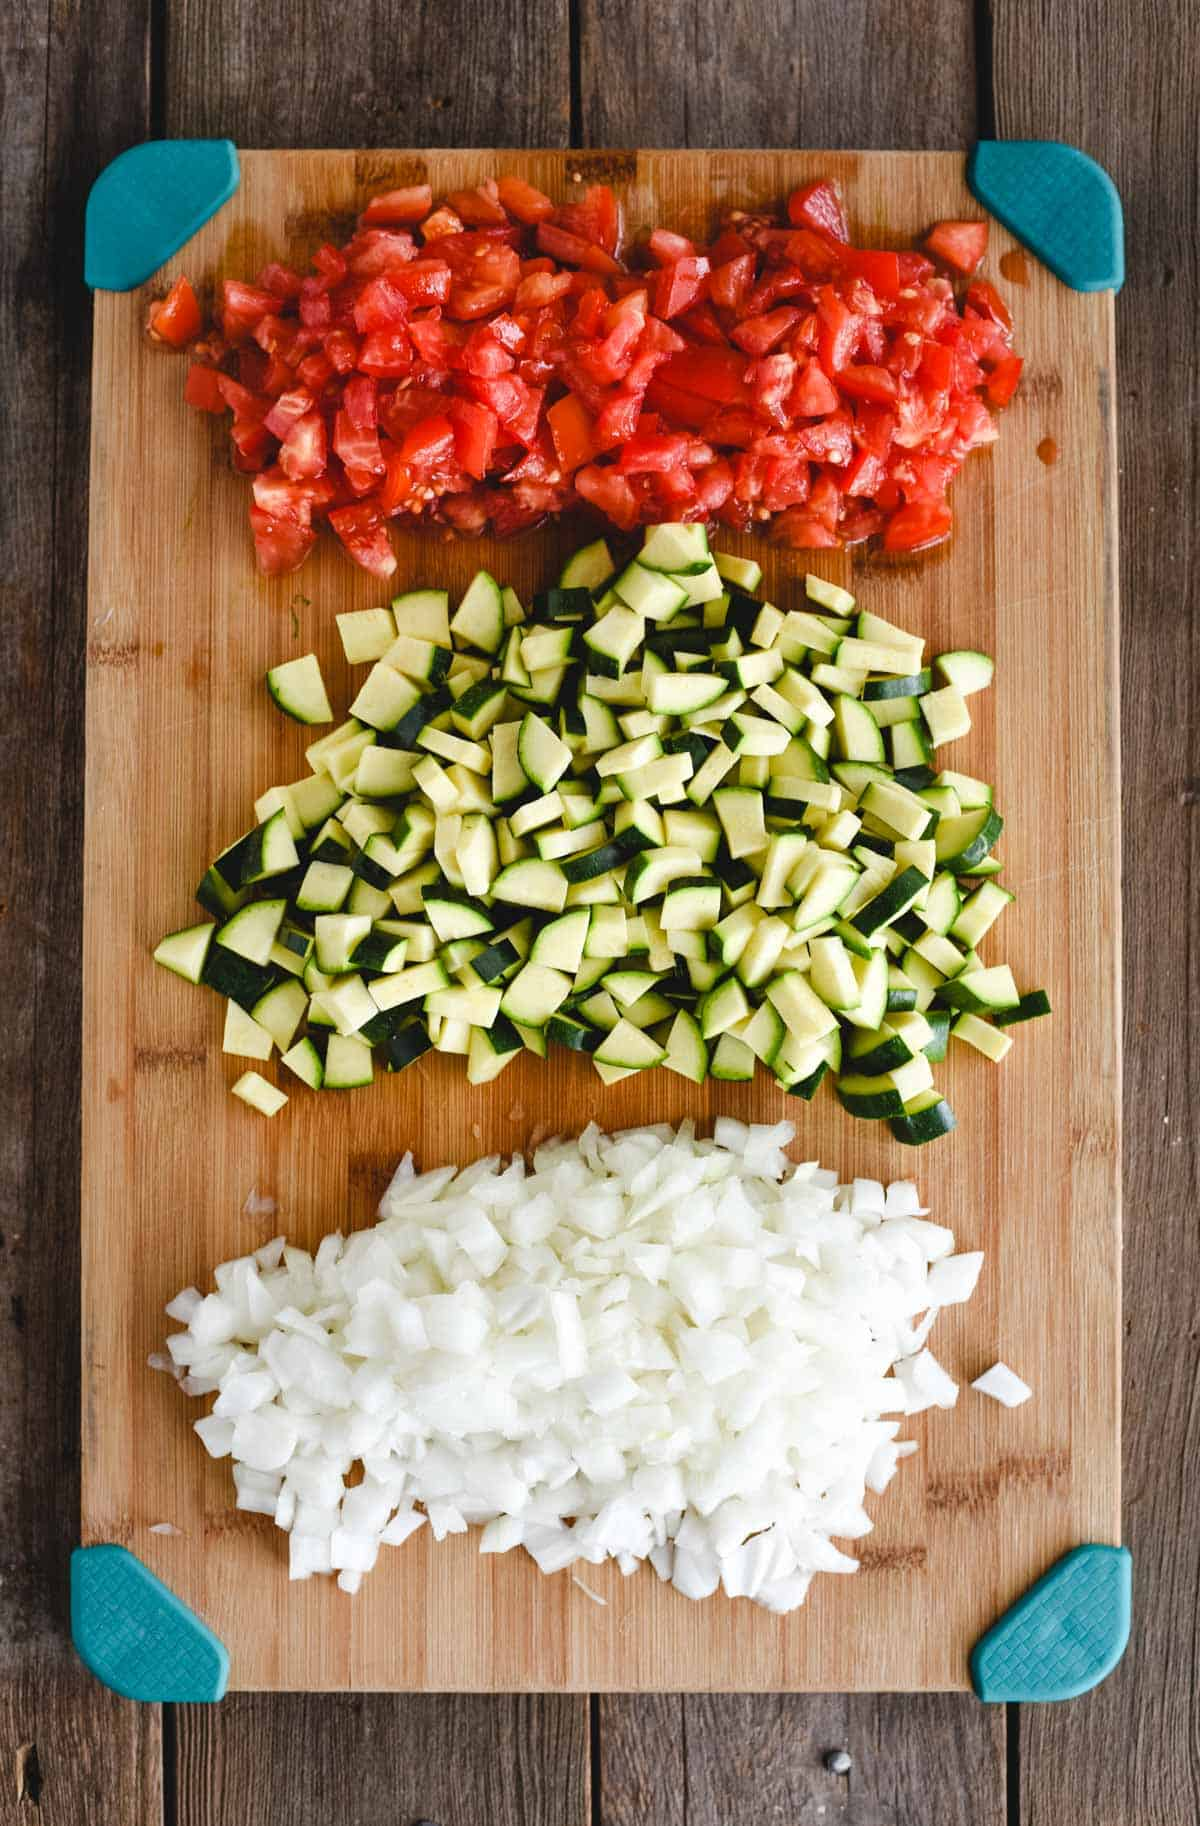 cutting board with zucchini, tomato, and onion chopped on it